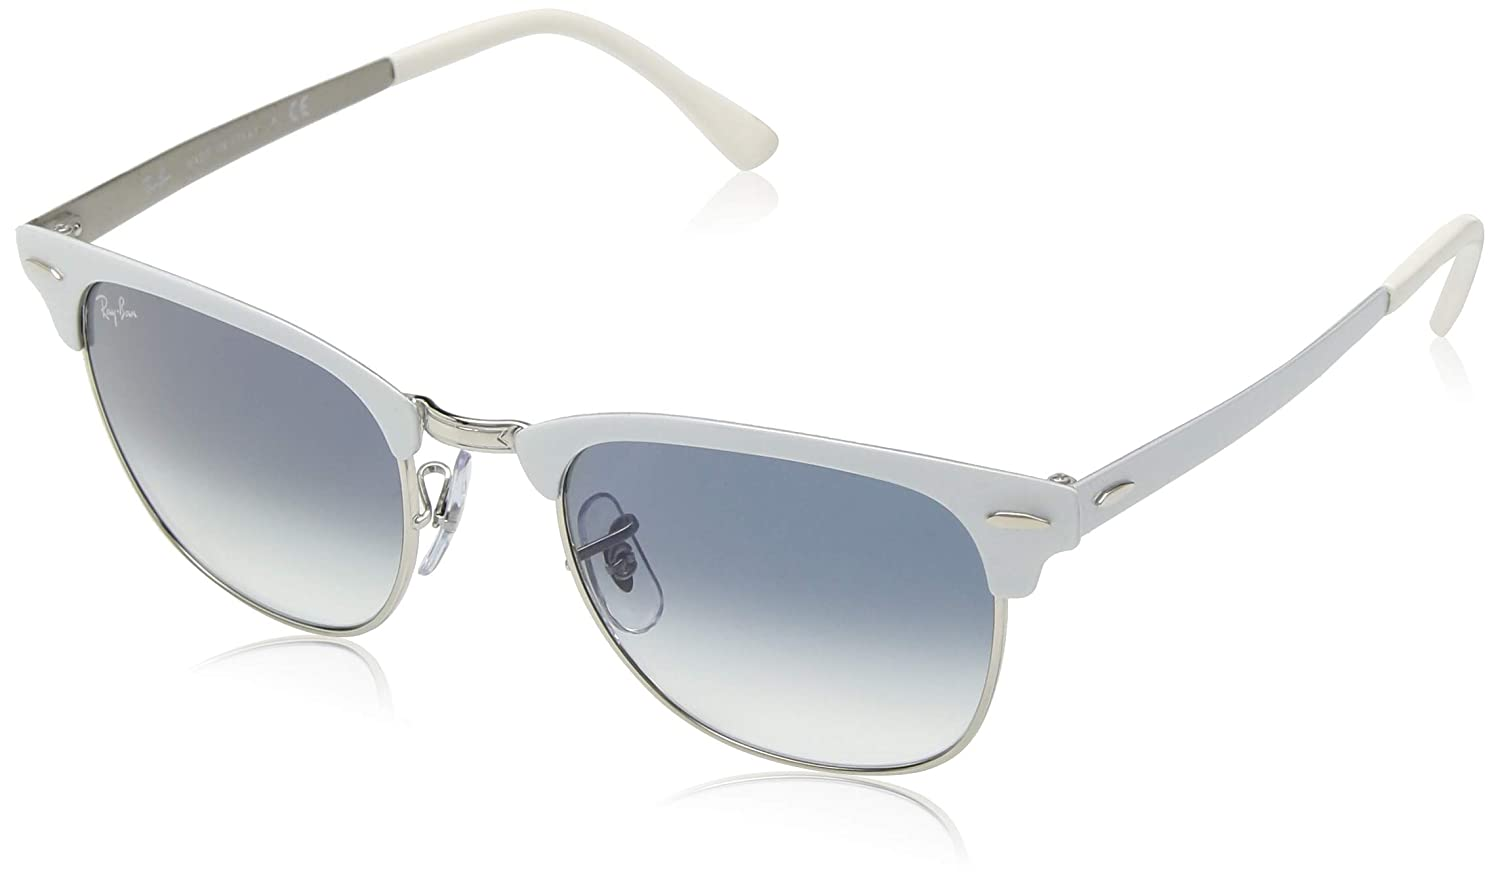 RAY-BAN 0rb3716 90883f 51 Gafas de sol, Silver On White, 50 Unisex